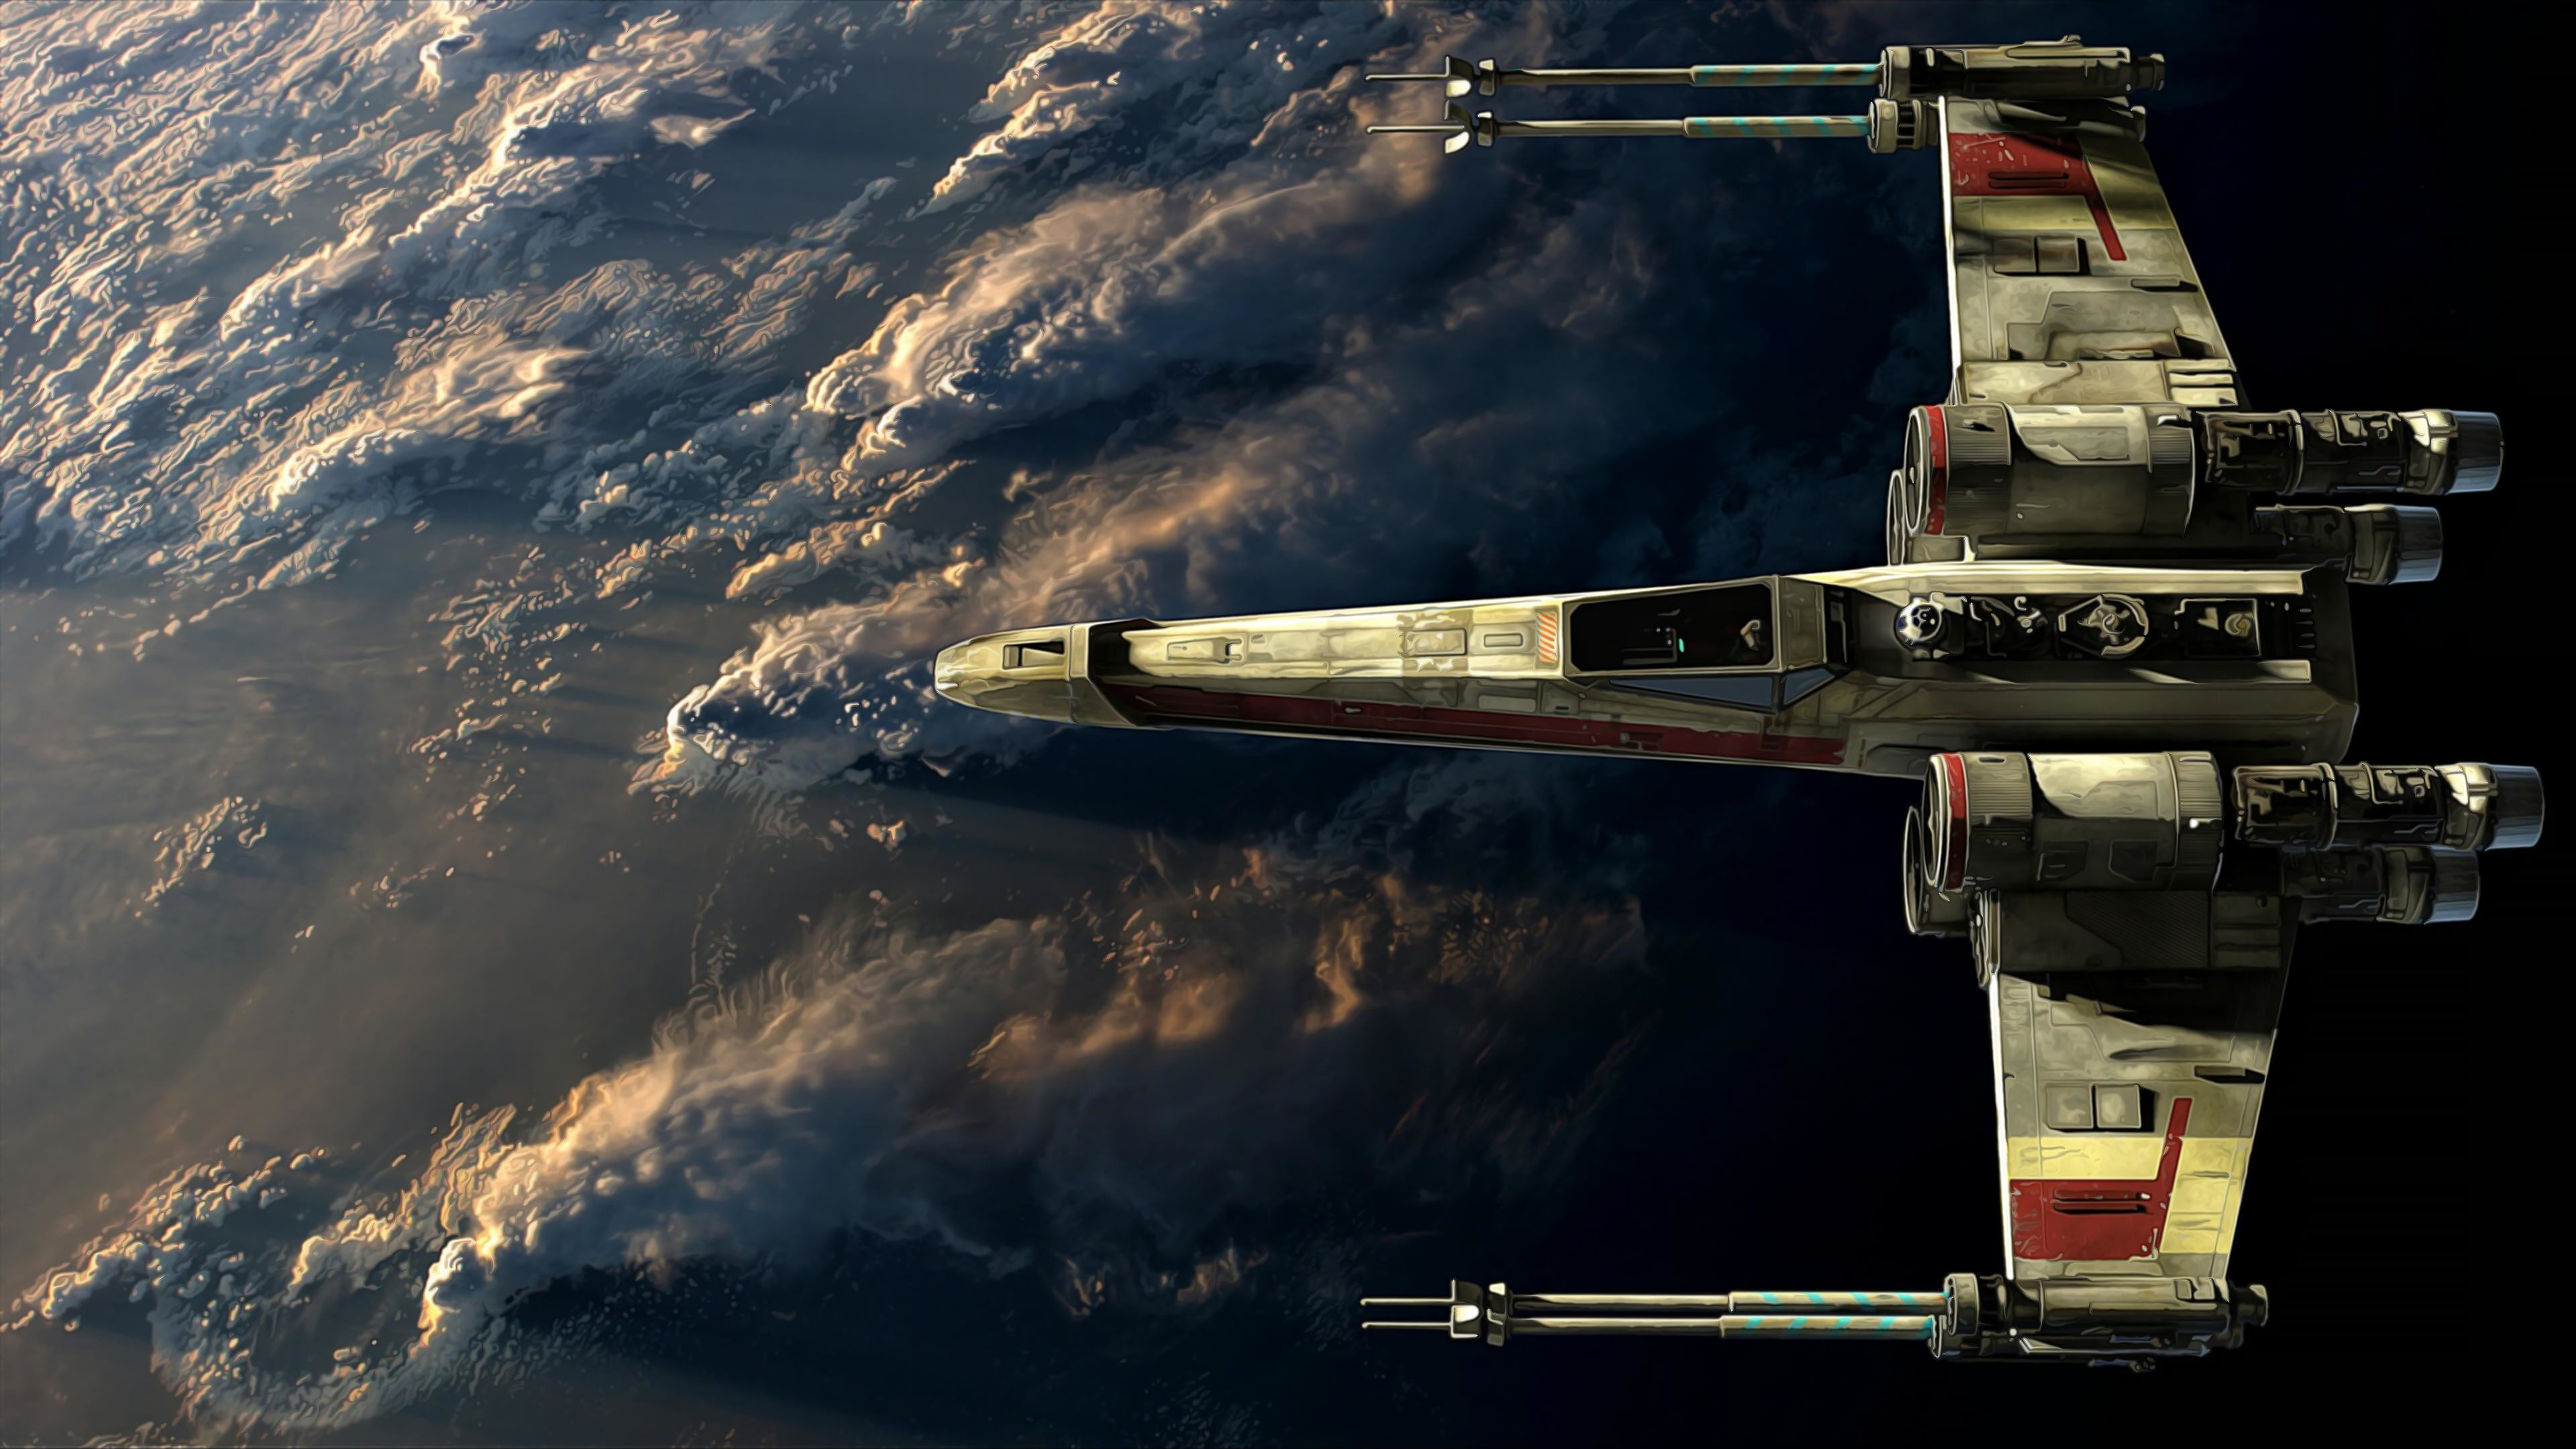 3840x2160 X-Wing in Orbit...or something